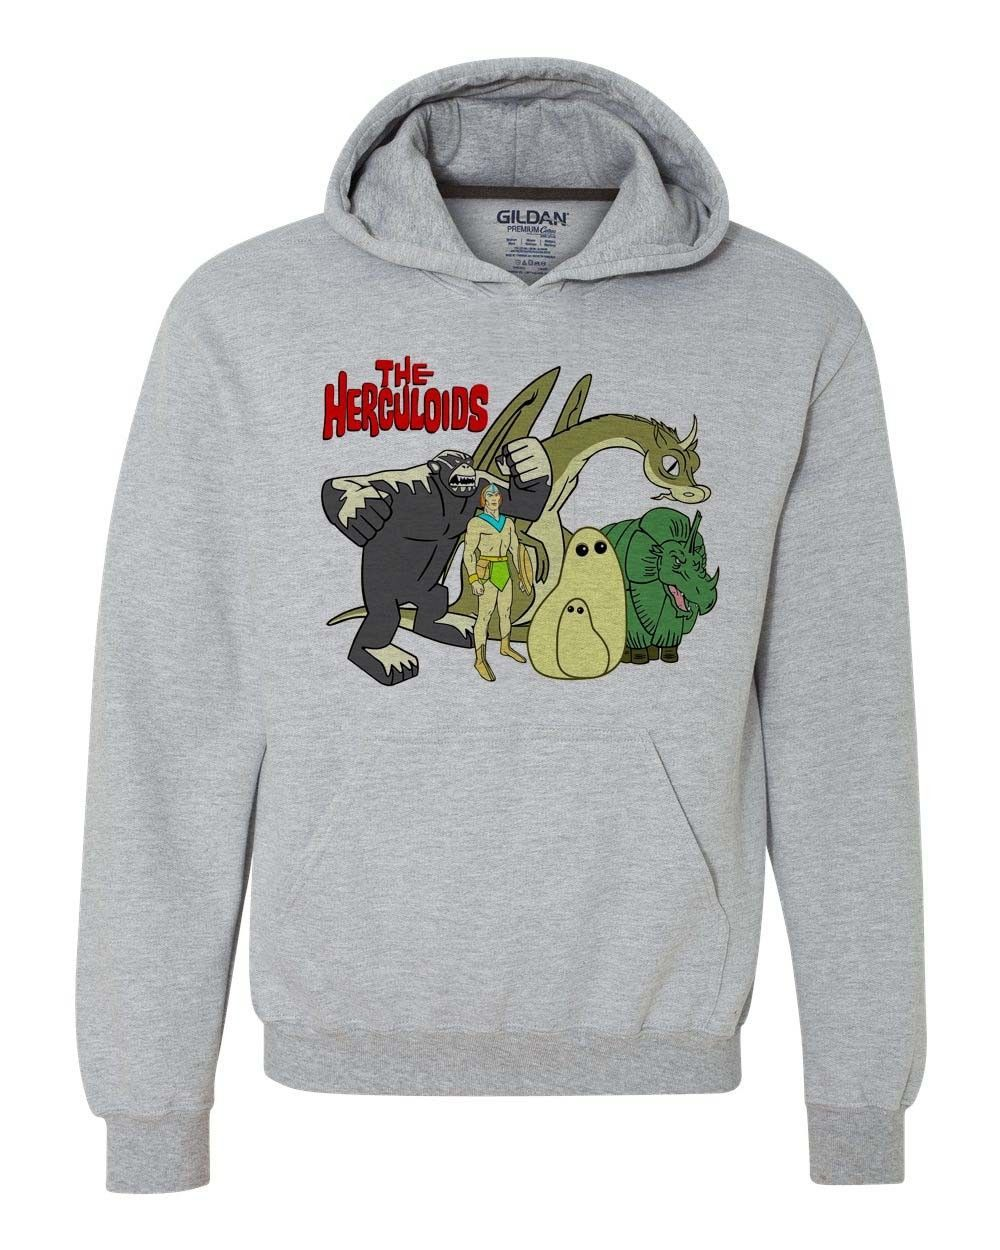 The Herculoids hoodie sweatshirt retro saturday morning cartoons 1970s 1980s